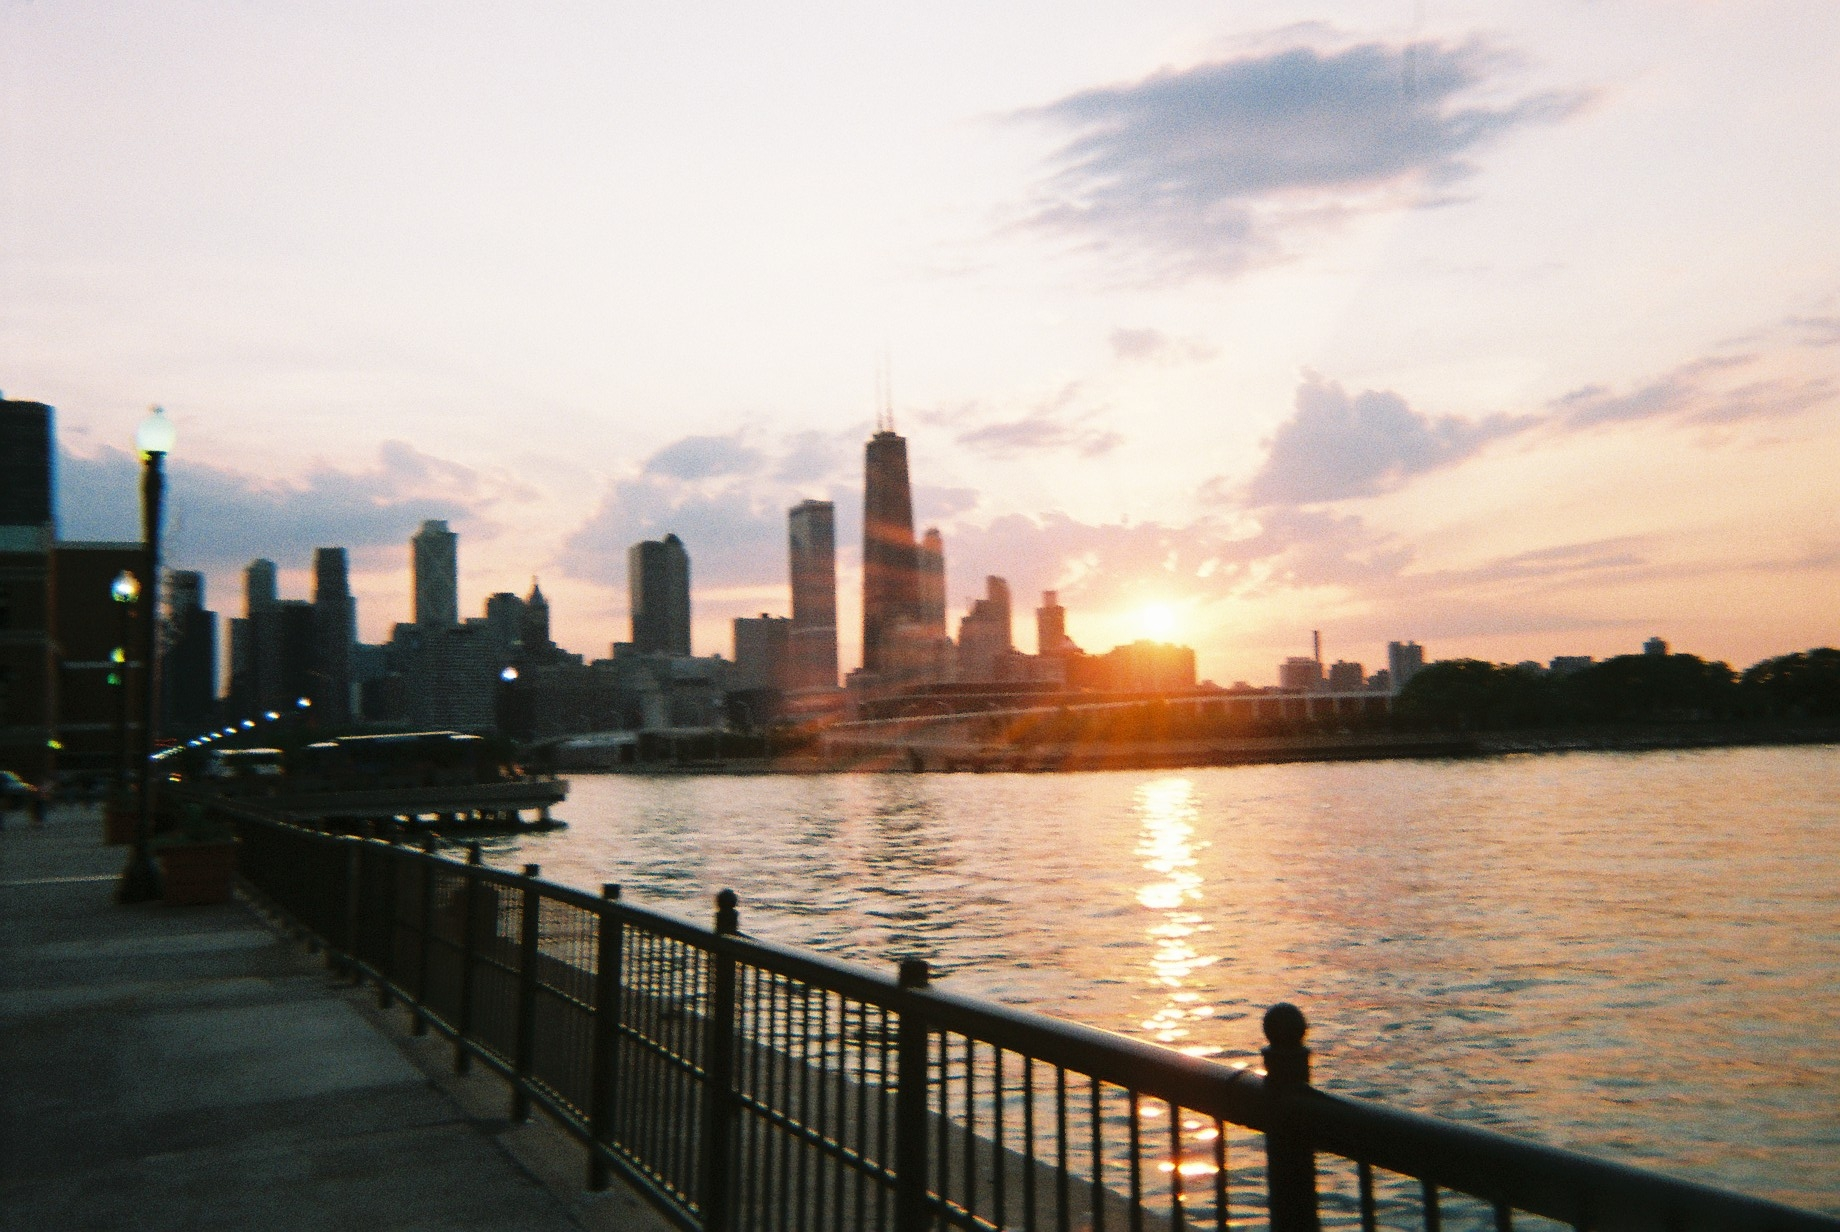 File:Hancock center at sunset, from navy pier, june 06.jpg ... | 1840 x 1232 jpeg 1192kB